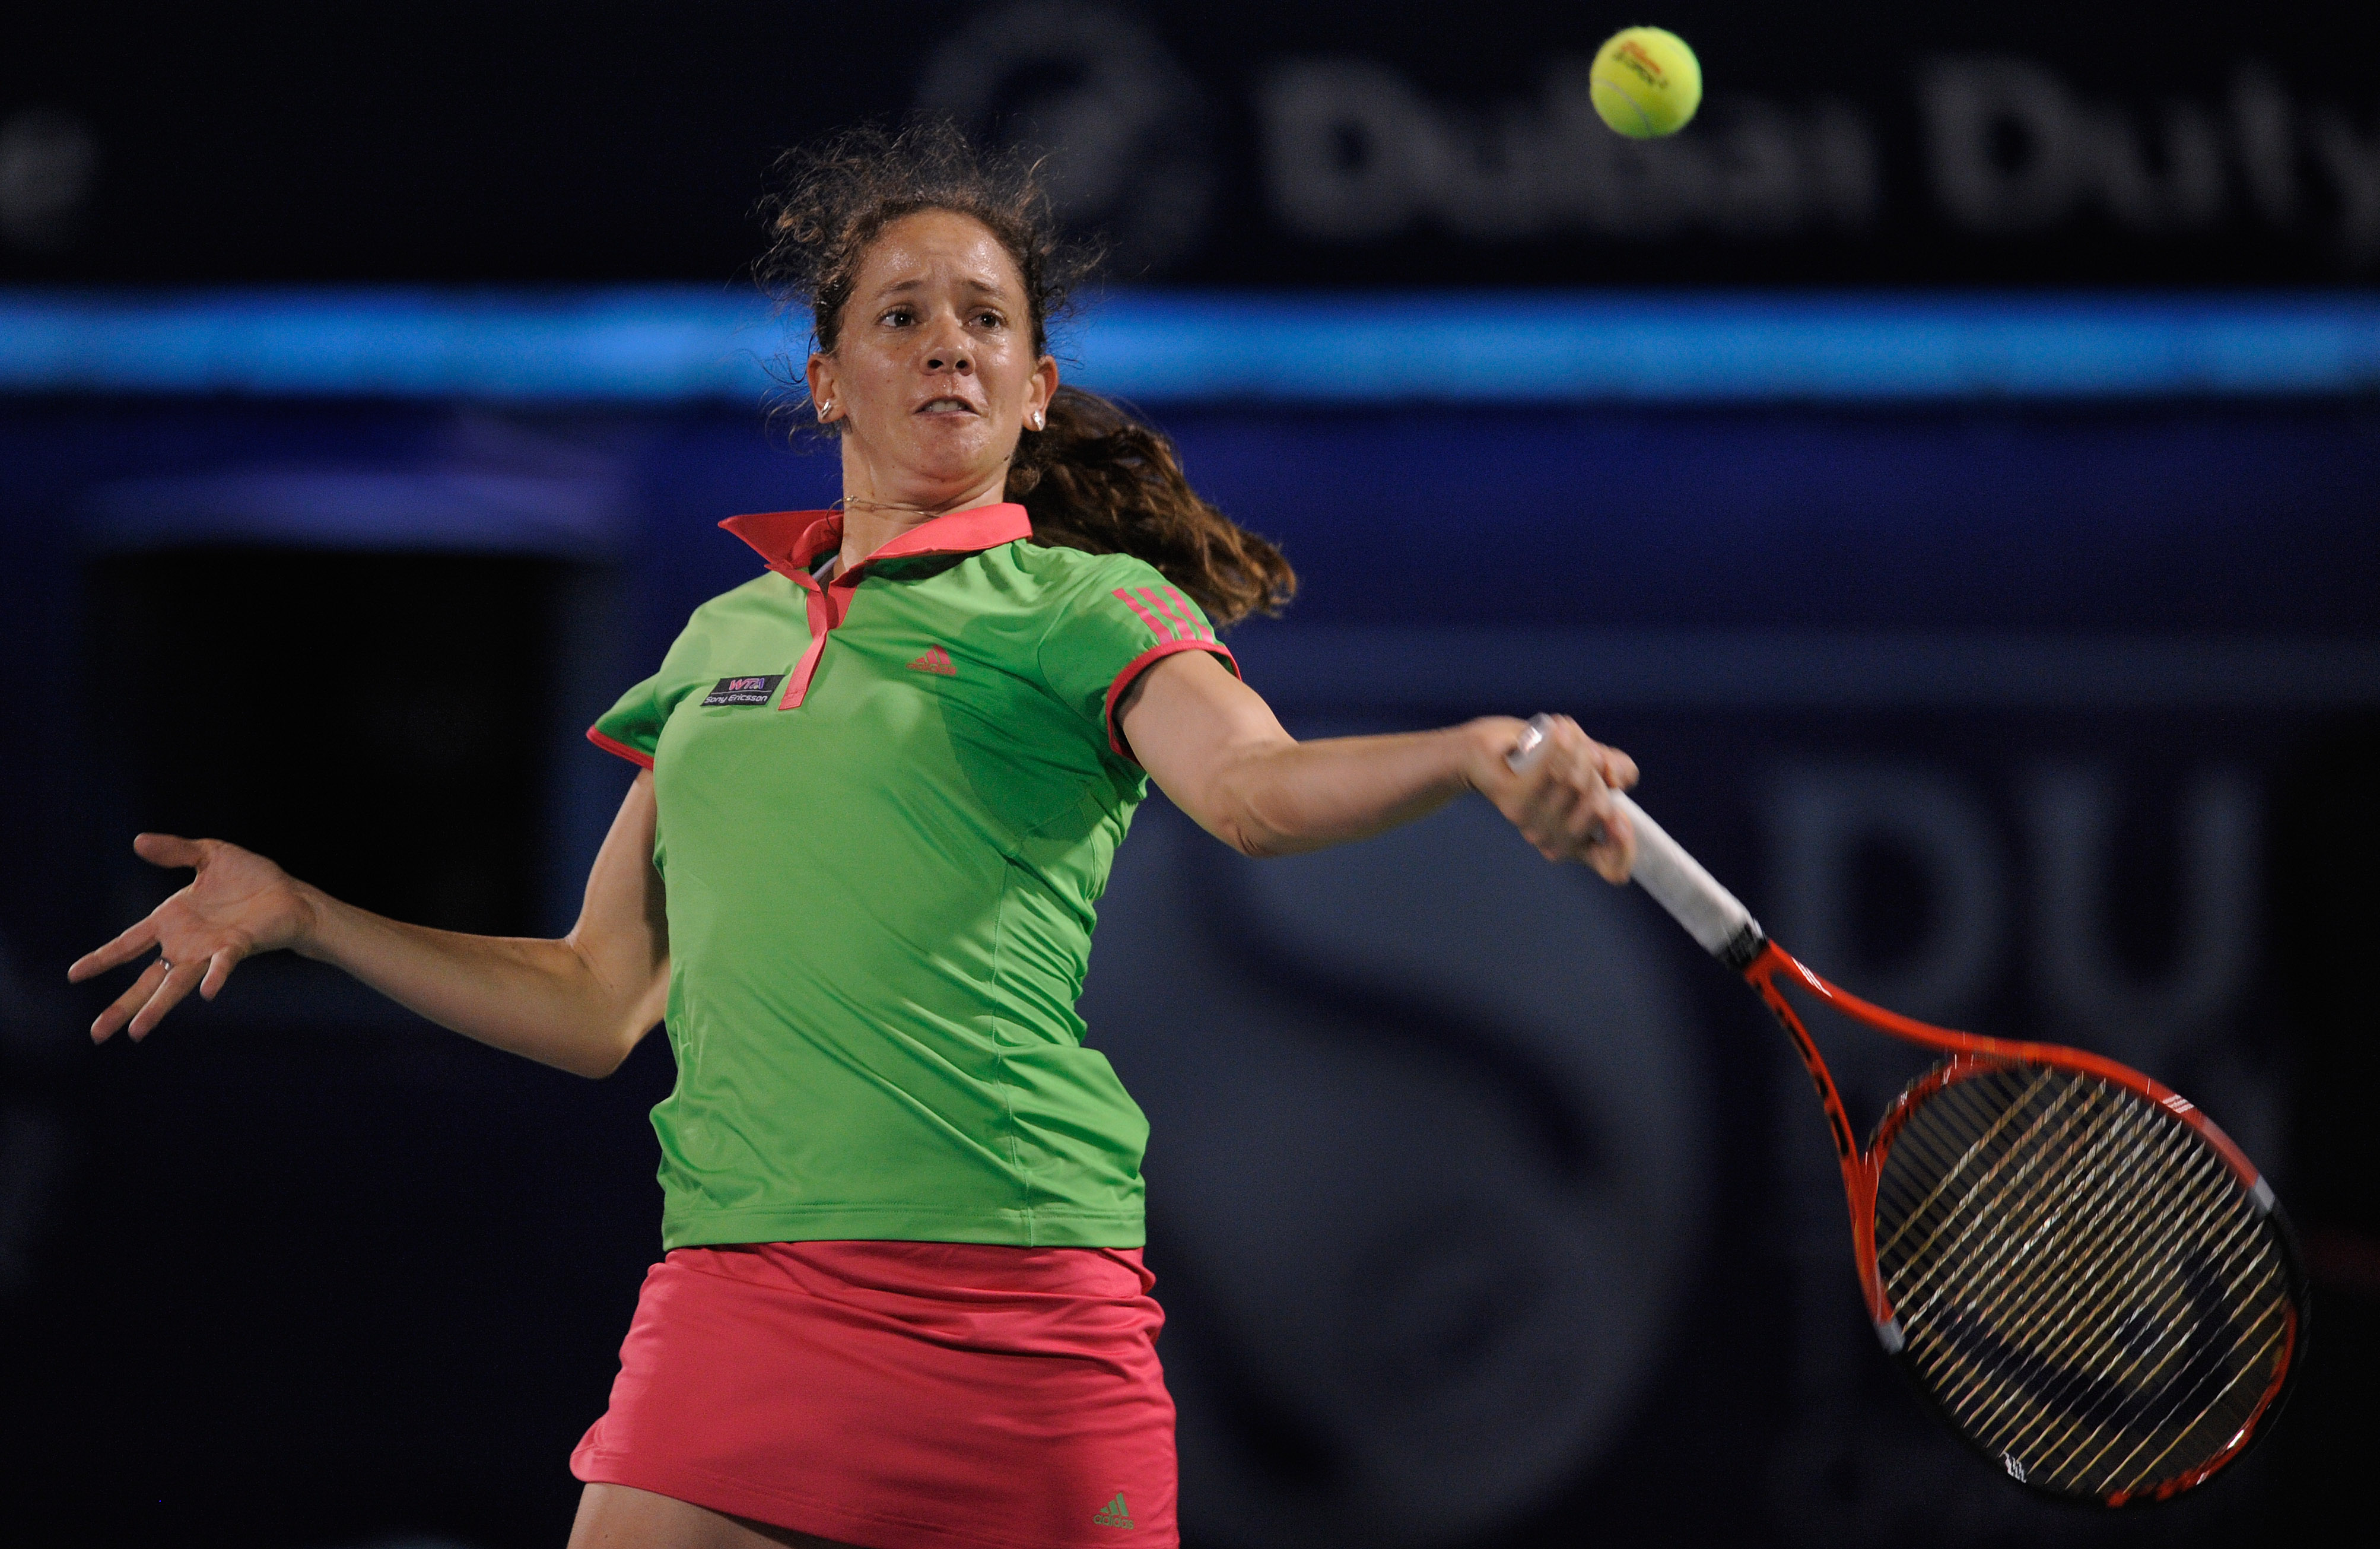 DUBAI, UNITED ARAB EMIRATES - FEBRUARY 15:  Patty Schnyder of Switzerland plays a shot during her Round 1 match against Ana Ivanovic of Serbia during day two of the WTA Dubai Duty Free Tennis Championships at the Dubai Tennis Stadium on February 15, 2011